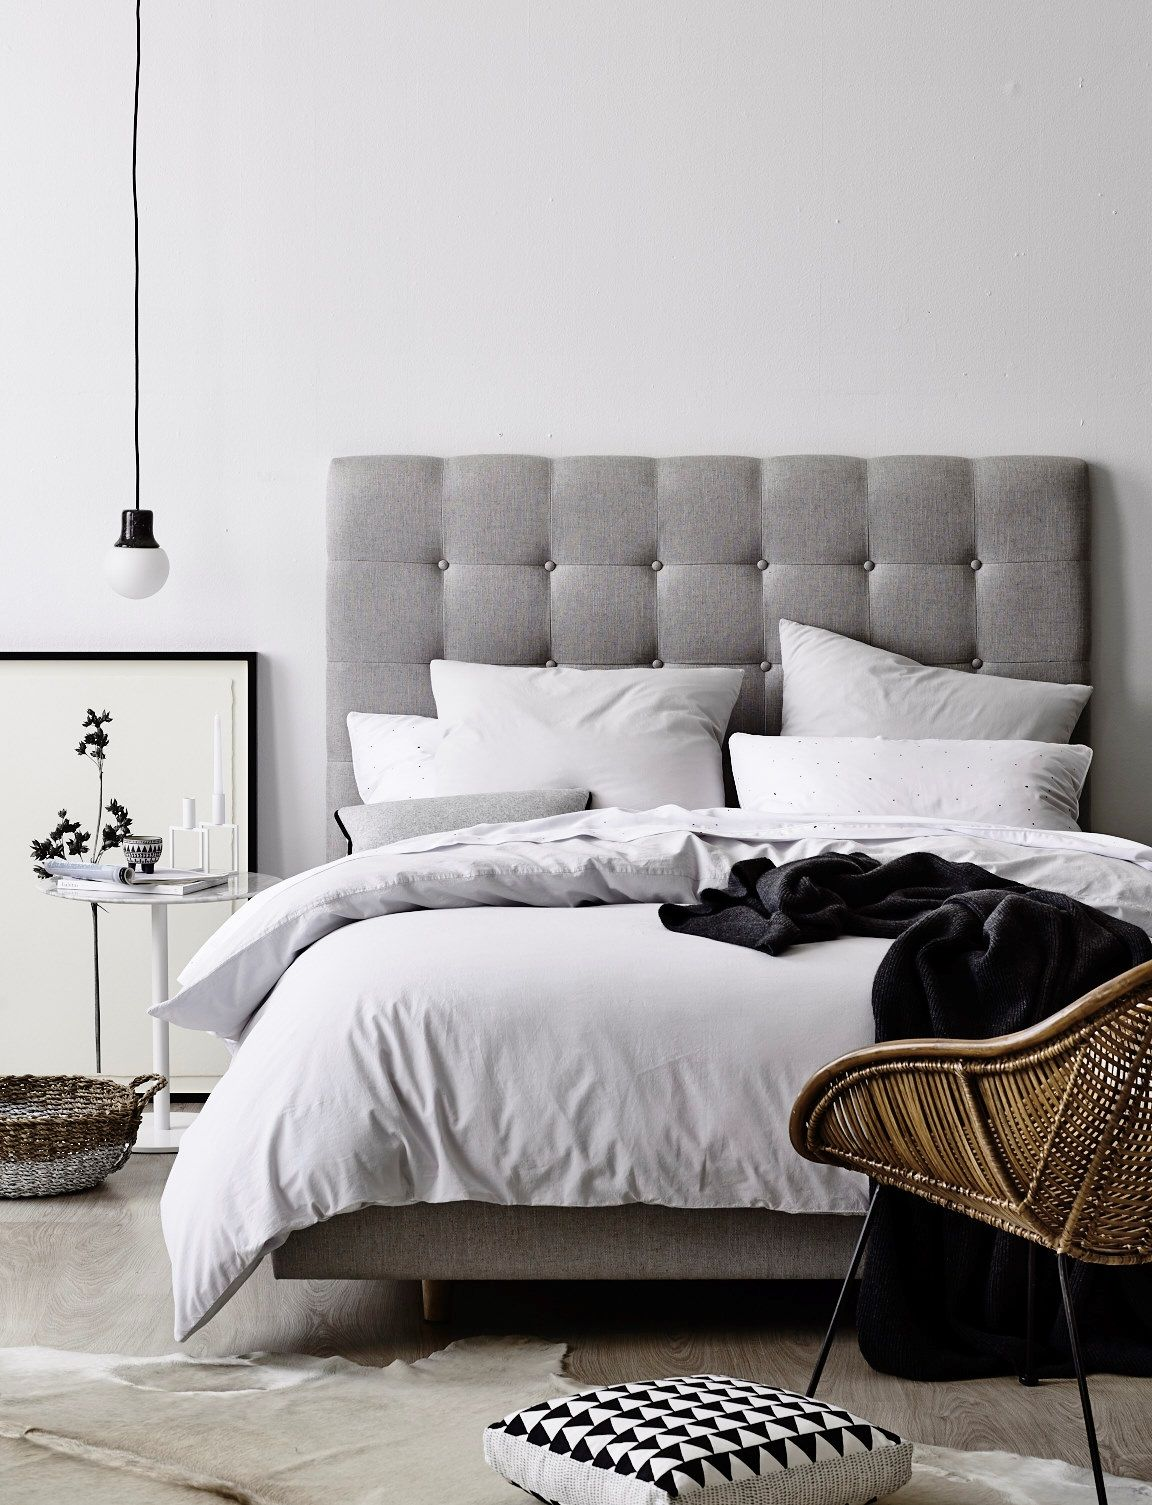 Custom Headboard Richmond Bedhead Heatherly Design Minimalist Bedroom Design Bedroom Inspirations Bedroom Headboard